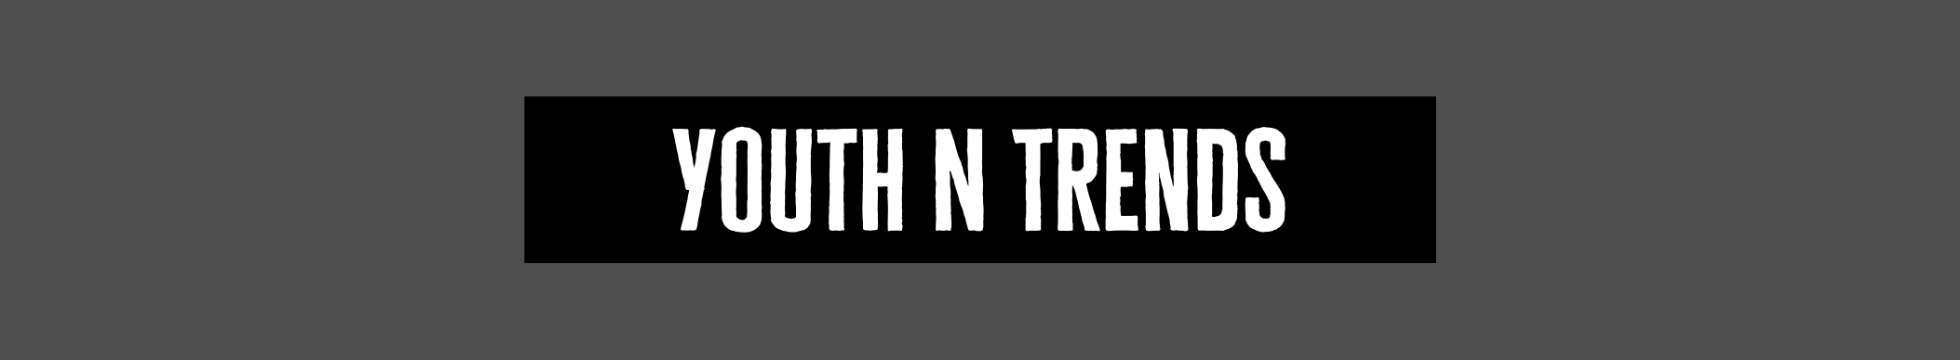 YOUTH n TRENDS